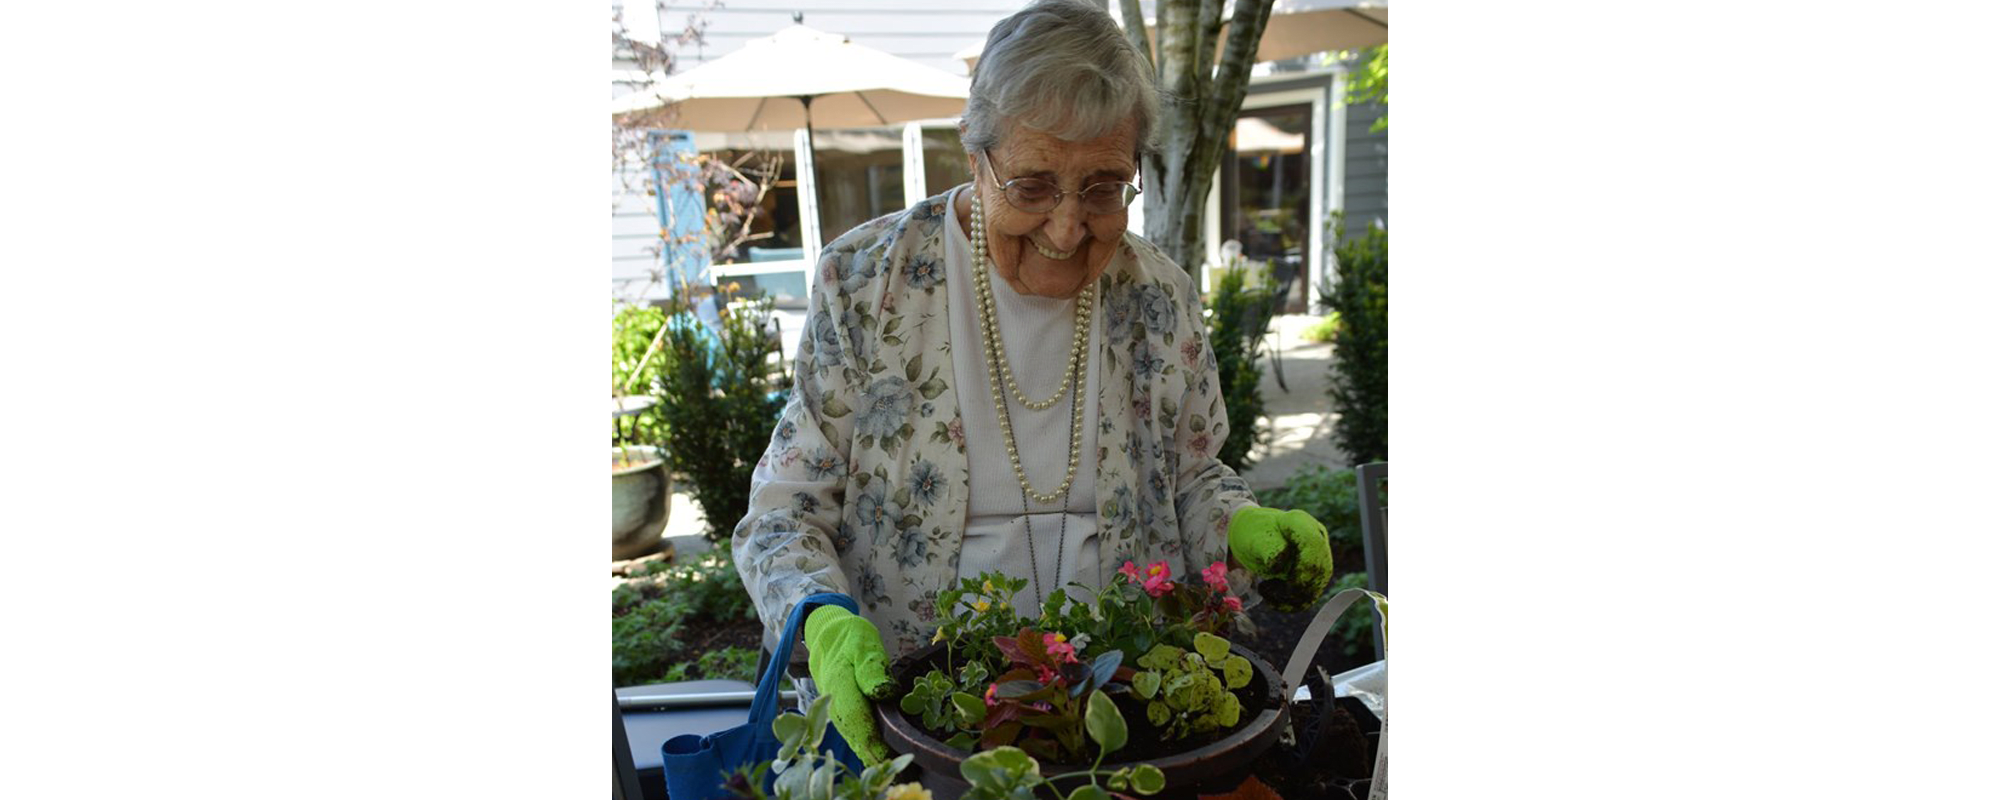 Woman gardening at Mountlake Terrace Plaza in Mountlake Terrace, Washington